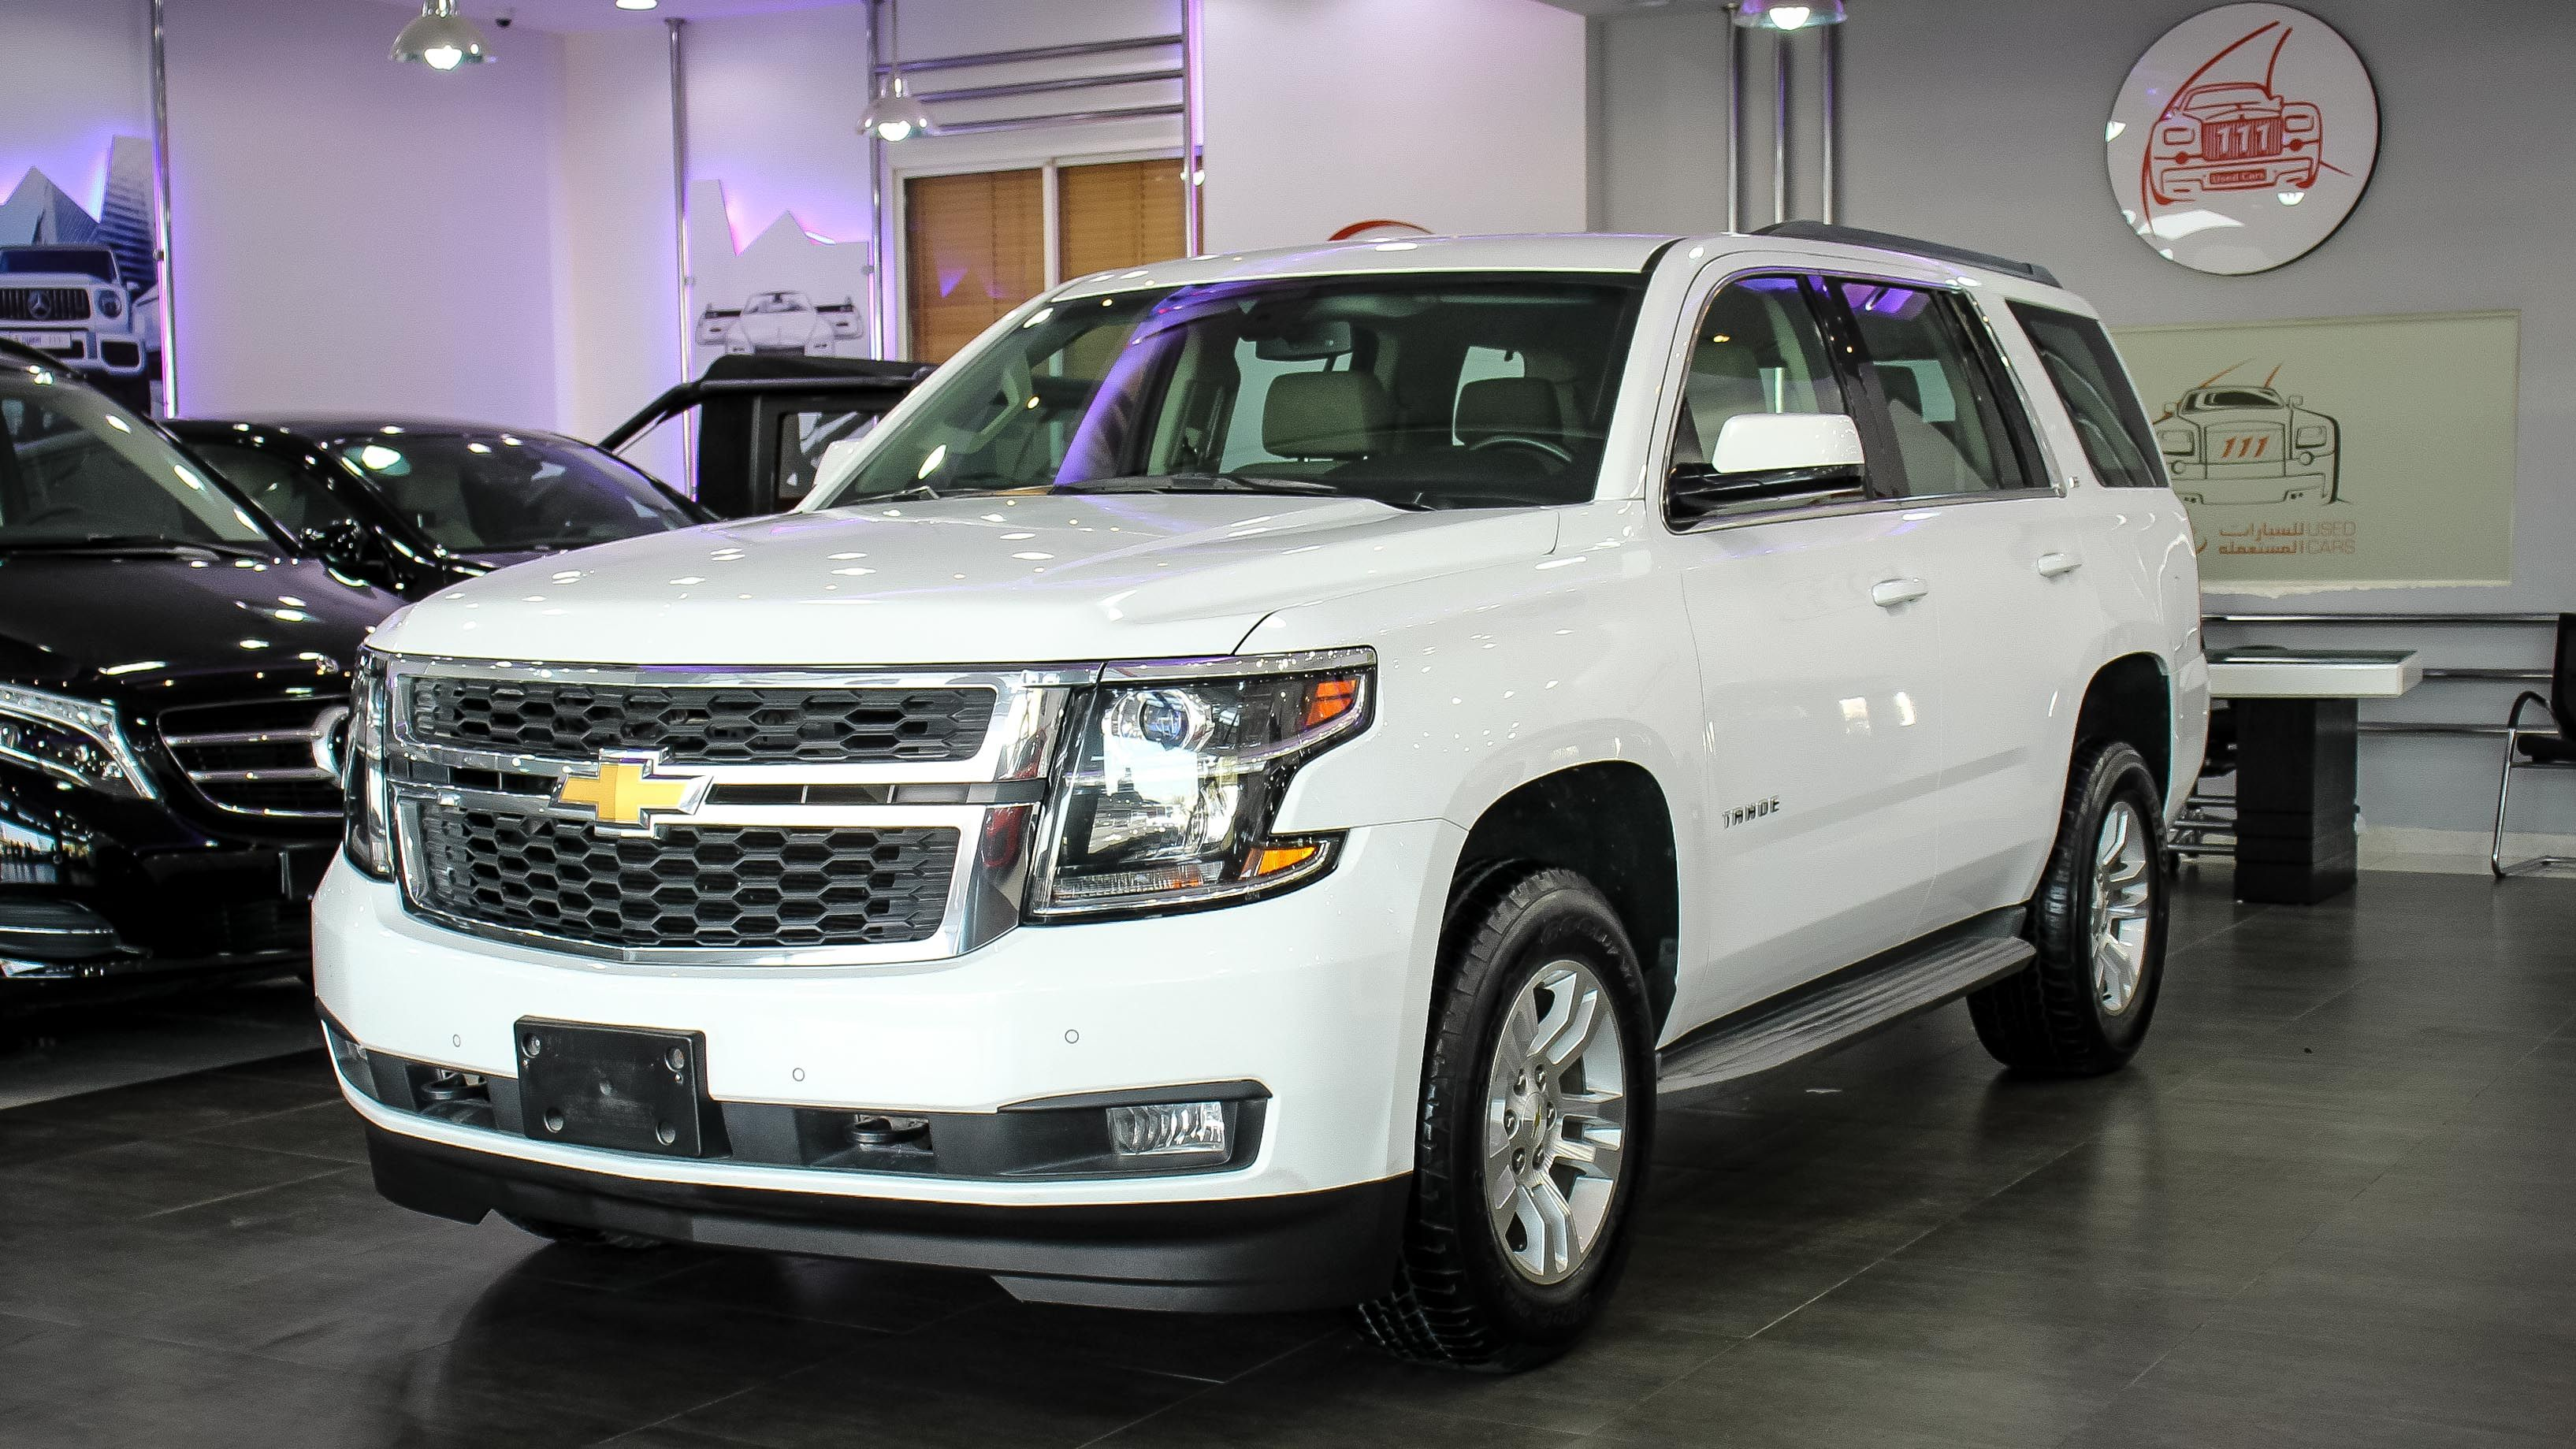 Model Chevrolet Tahoe Lt Year 2015 Km 60 700 Price Call 971 4 320 4111 Chevrolet Tahoe Tahoe Lt Chevrolet